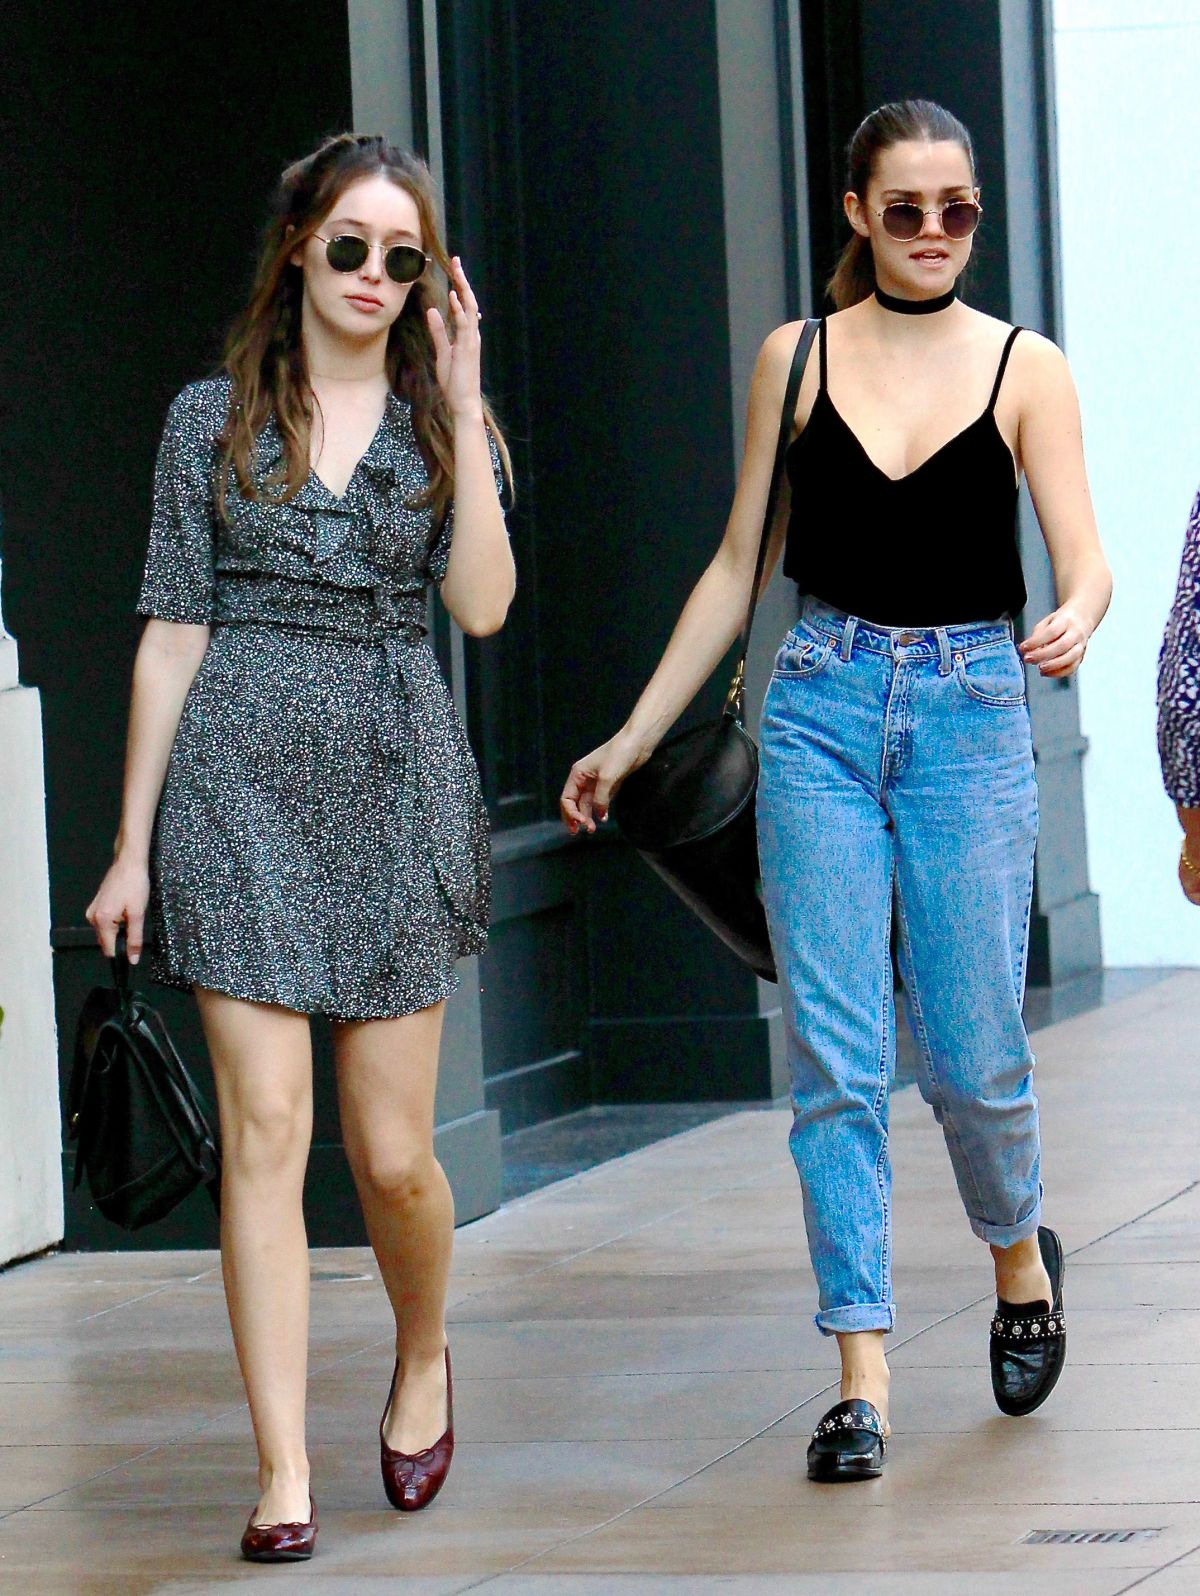 ALYCIA DEBNAM-CAREY Out with a Friend in Los Angeles 11/07/2016